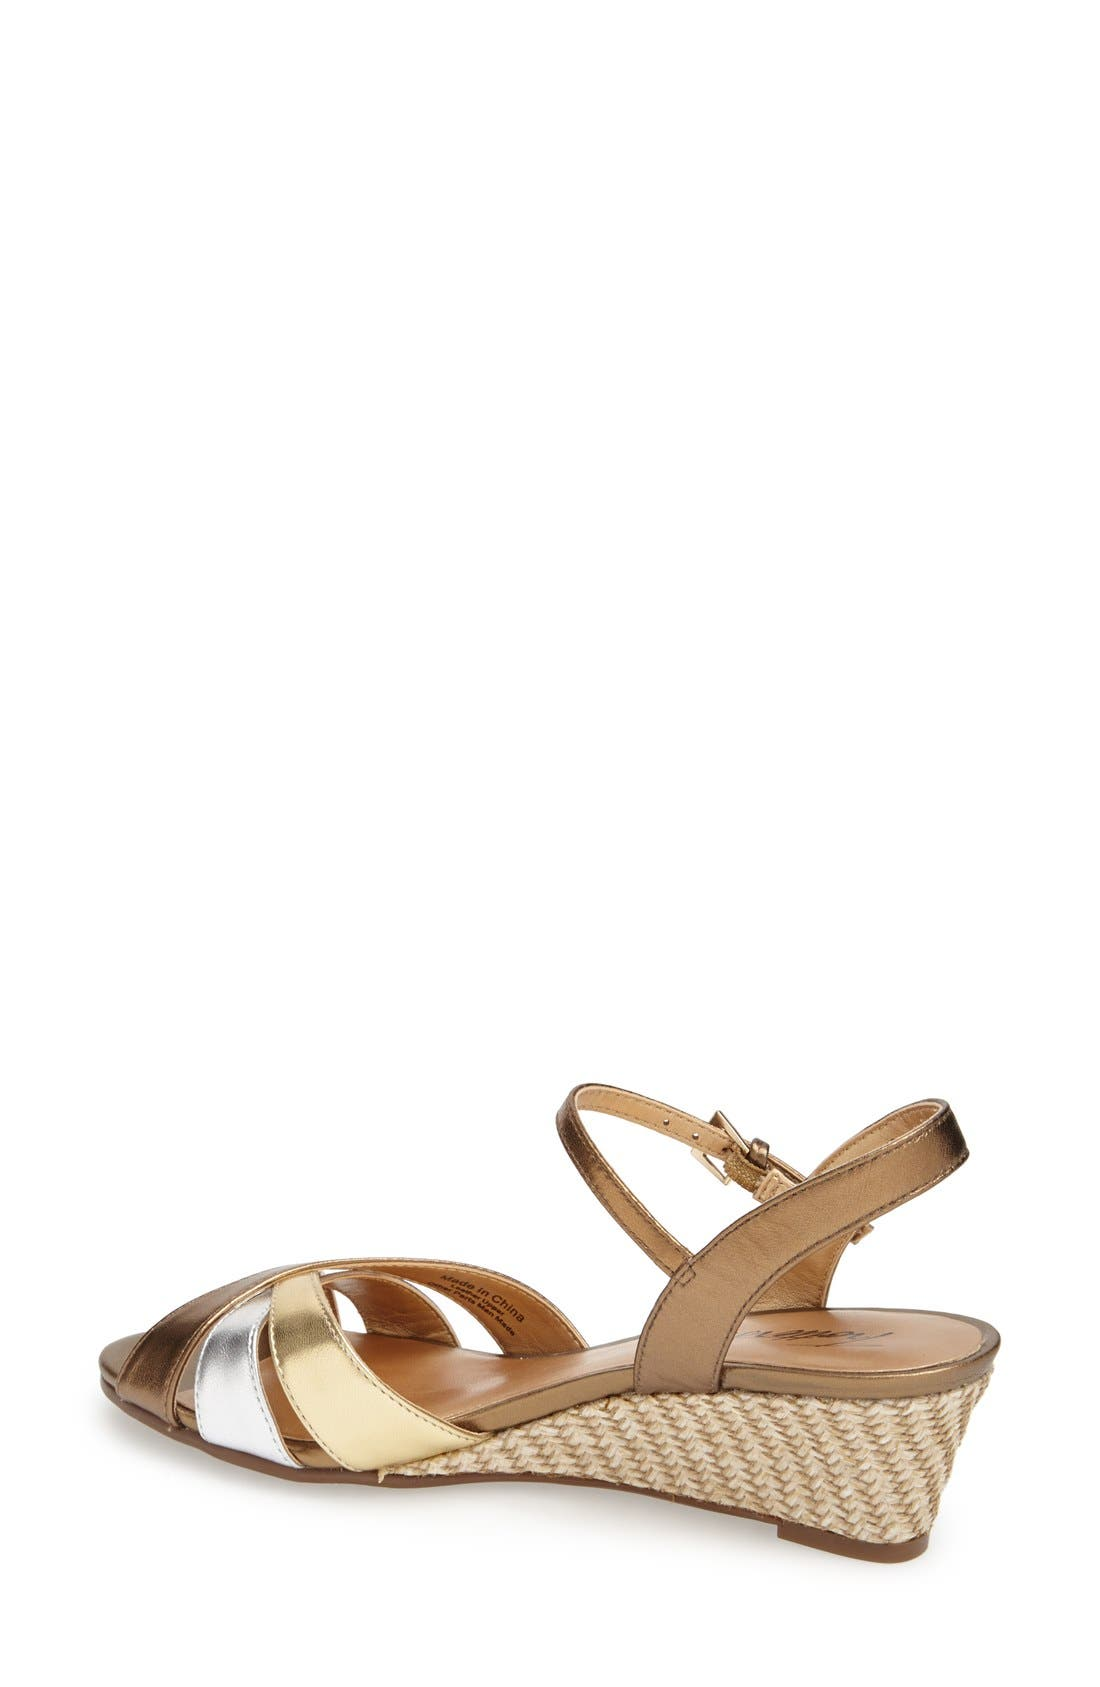 'Mickey' Wedge Sandal,                             Alternate thumbnail 25, color,